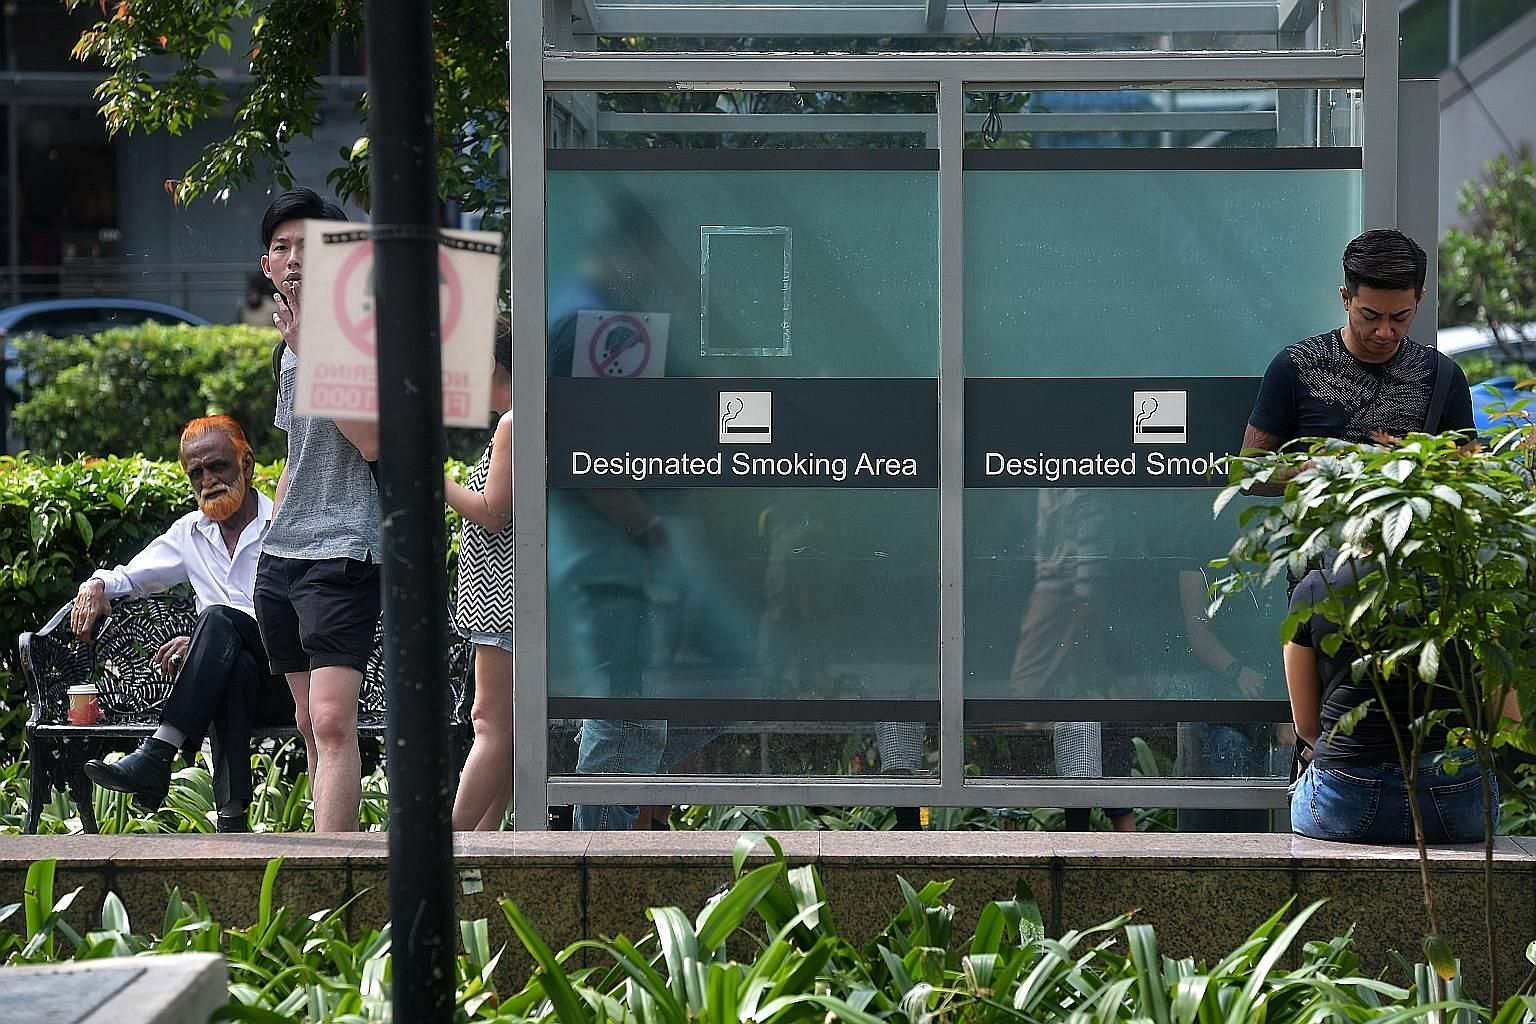 Smokers at a designated smoking area in front of Far East Plaza along Scotts Road yesterday. The National Environment Agency said that an average of 21 tickets per day were issued in the month of April last year - after enforcement began - and the nu